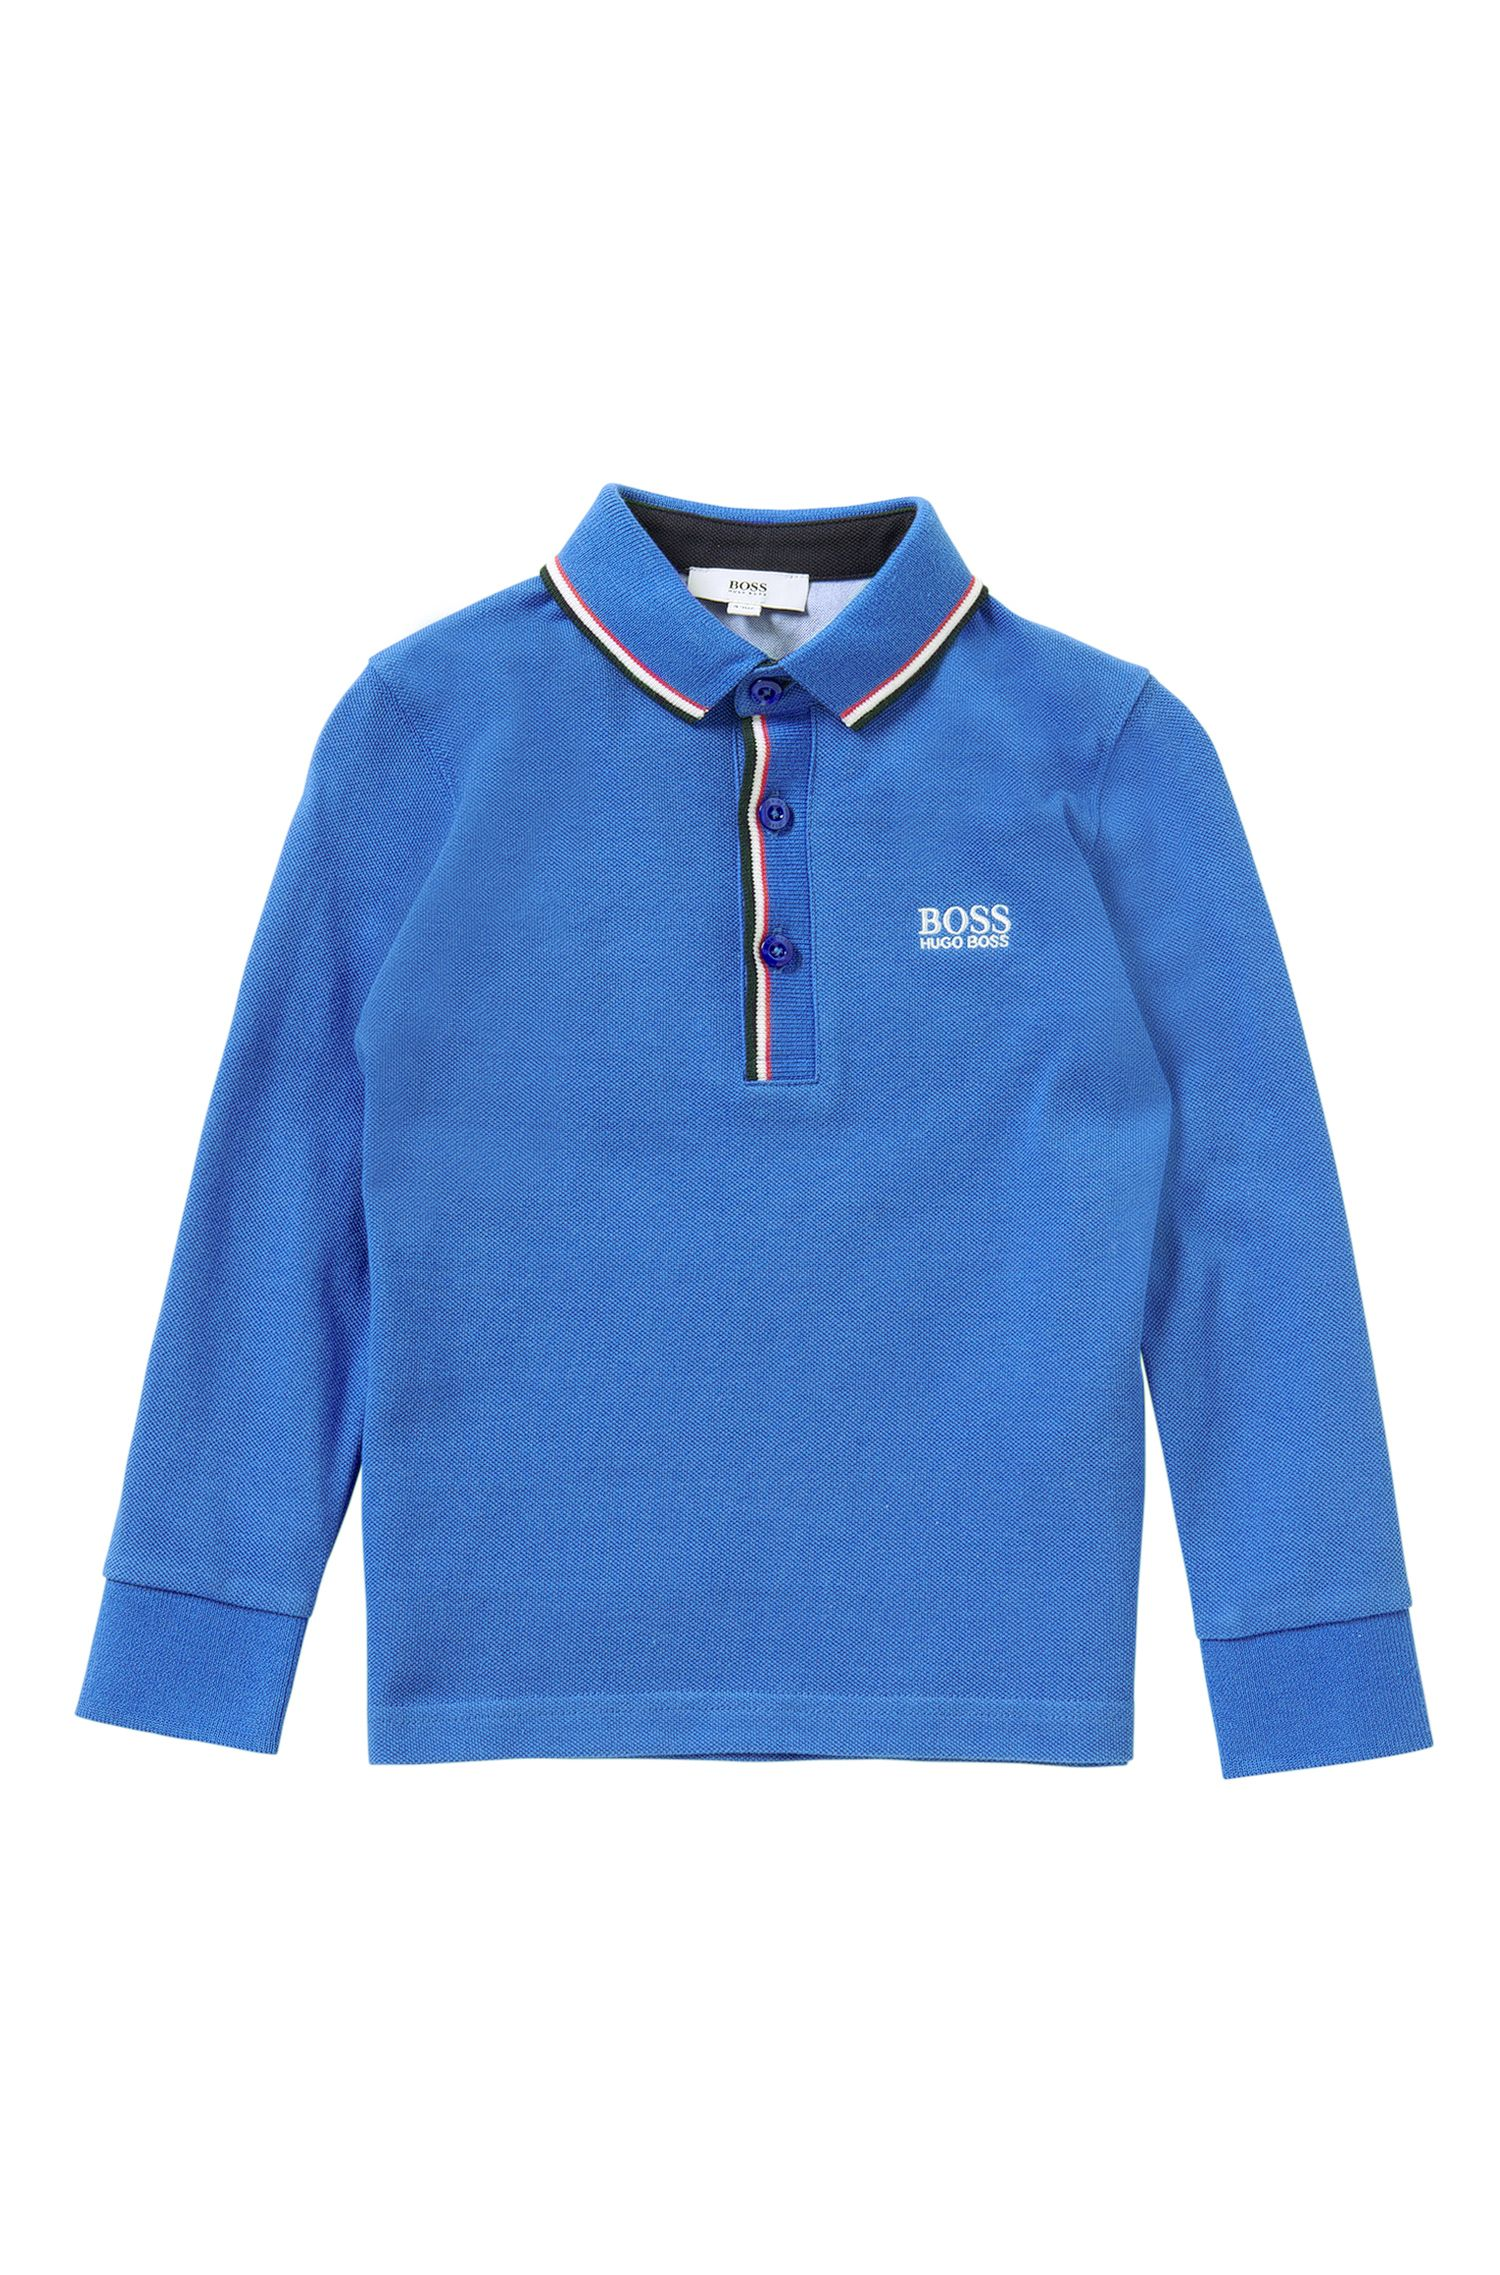 Plain kids' long-sleeved polo shirt in cotton: 'J25925'